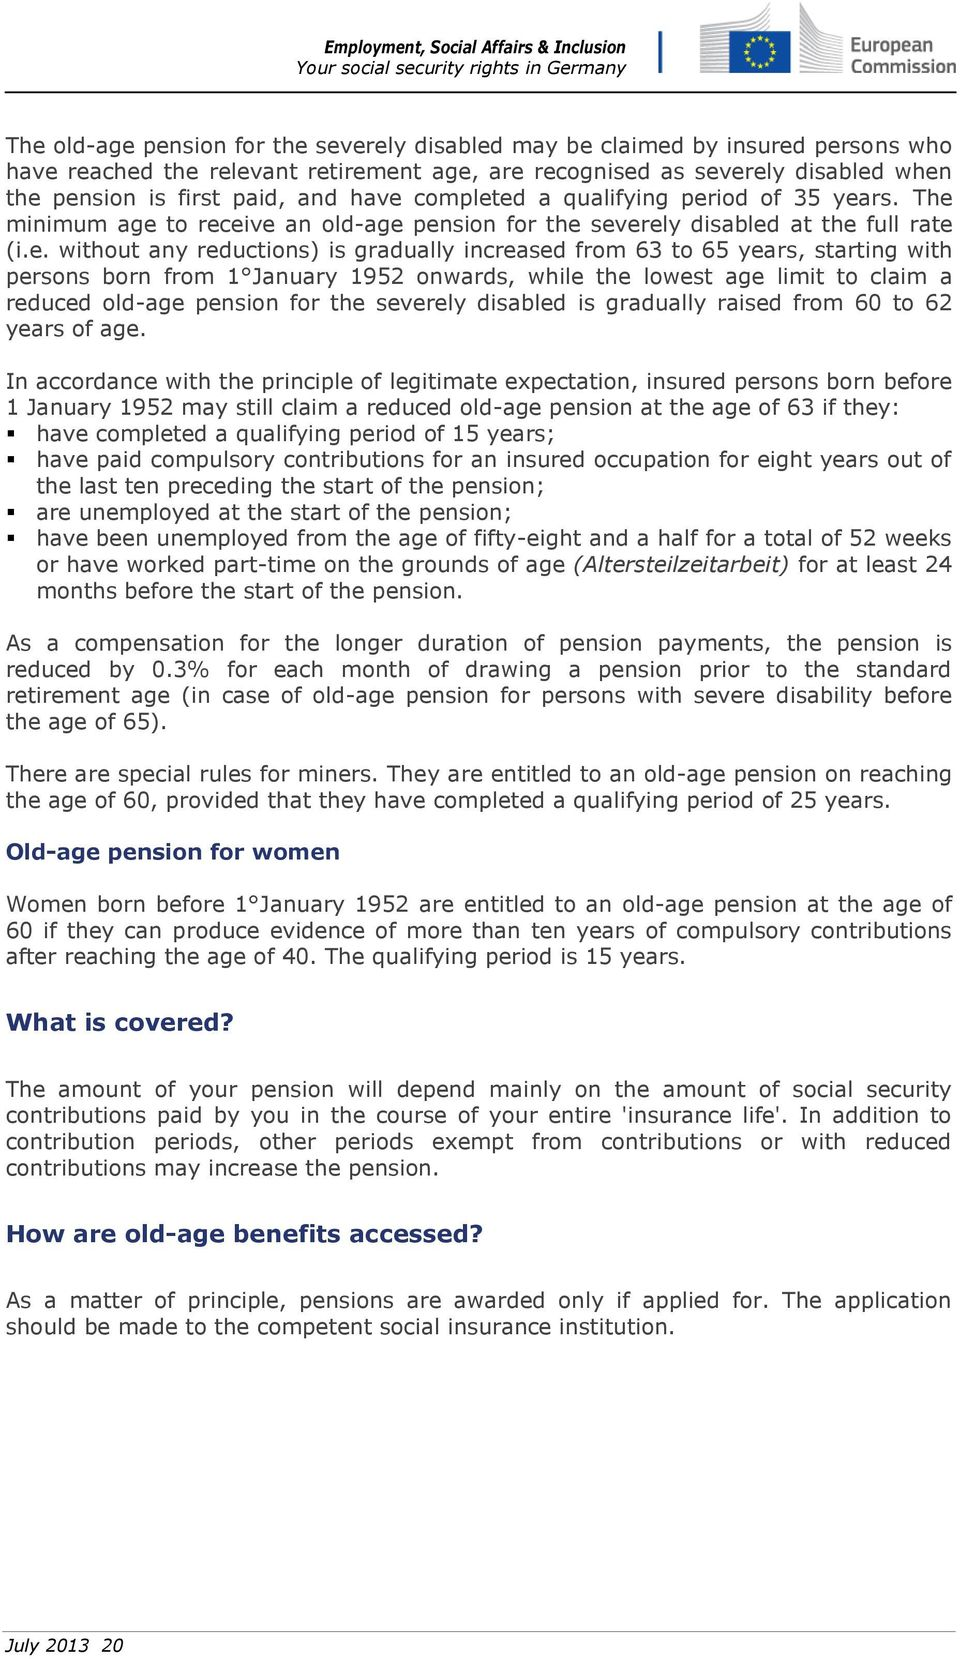 to 65 years, starting with persons born from 1 January 1952 onwards, while the lowest age limit to claim a reduced old-age pension for the severely disabled is gradually raised from 60 to 62 years of